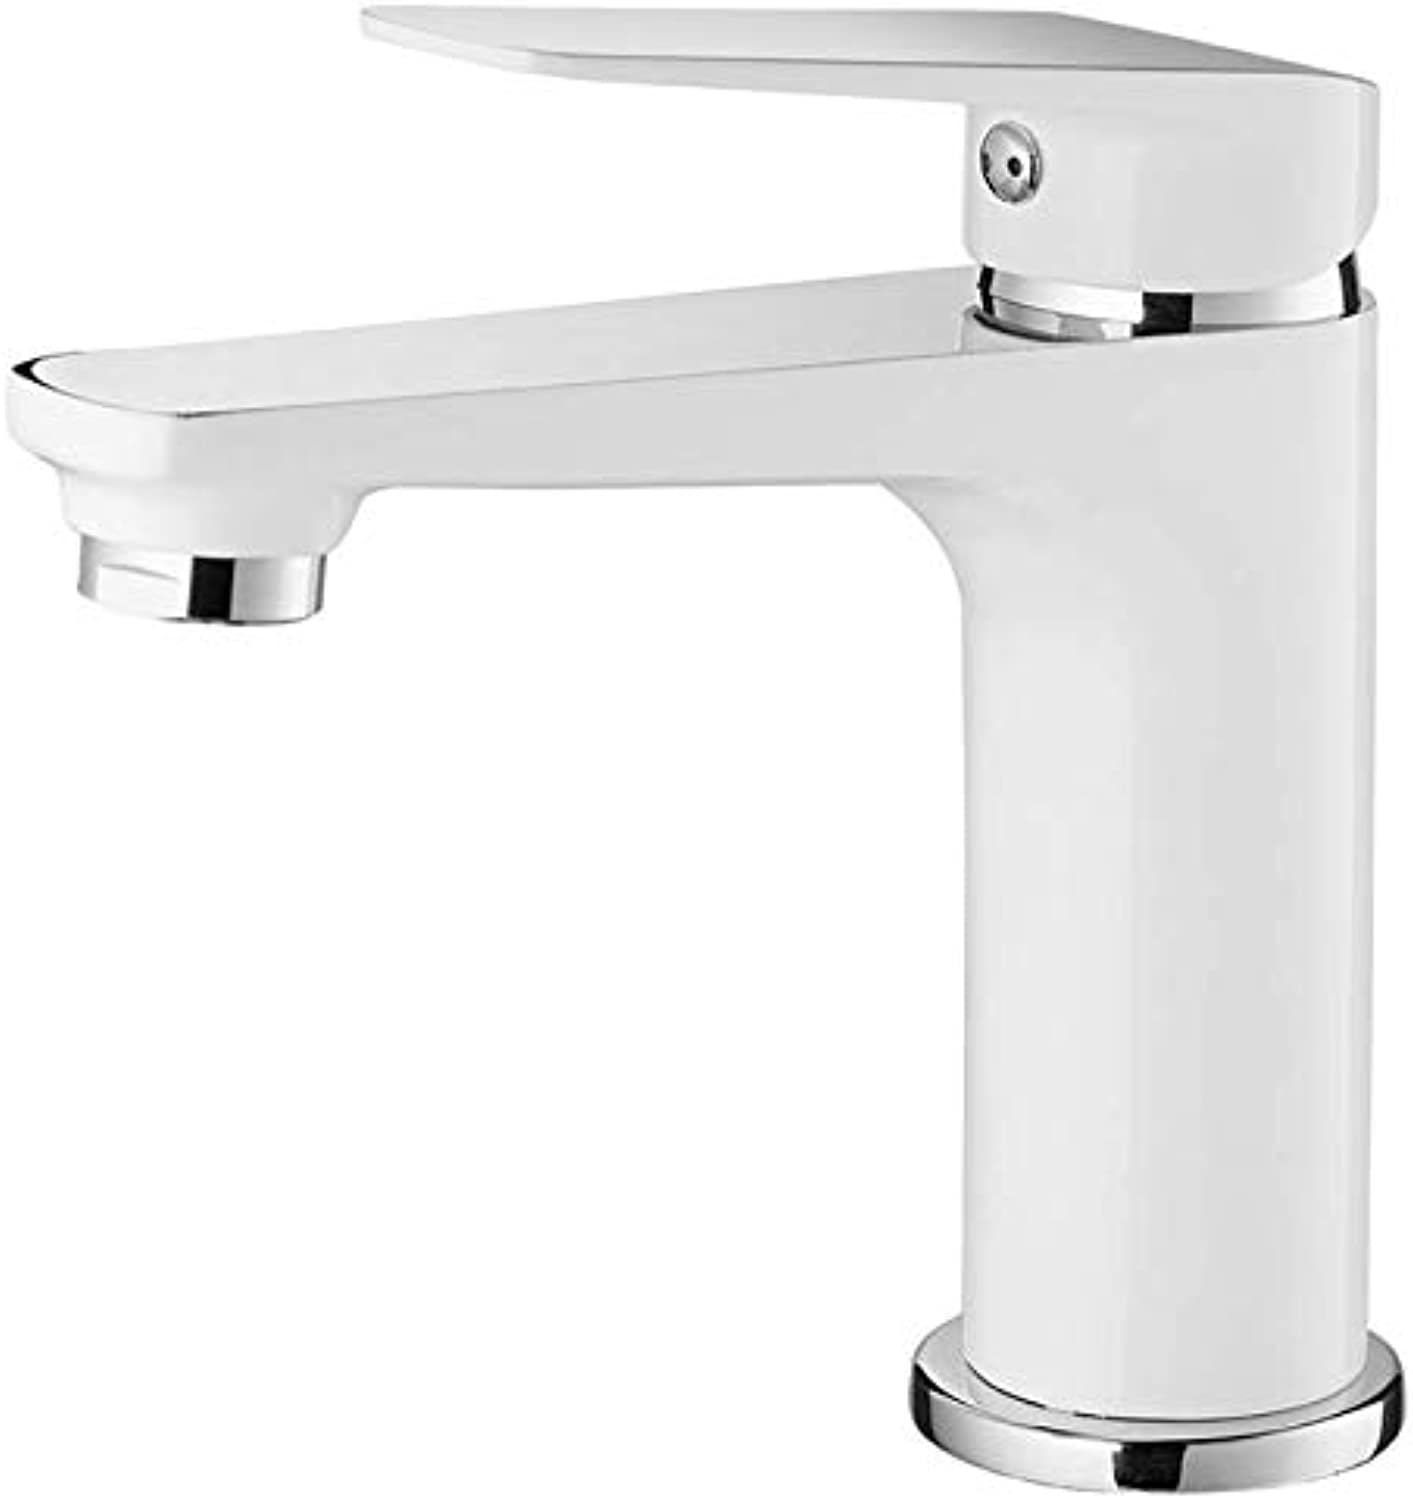 Basin Mixer Tap Bath Fixtures Wash Basinsinkkitchen Washbasin, Faucet, Copper, Semi Baking, Single Hole, Single Handle, Cold and Hot Faucet.